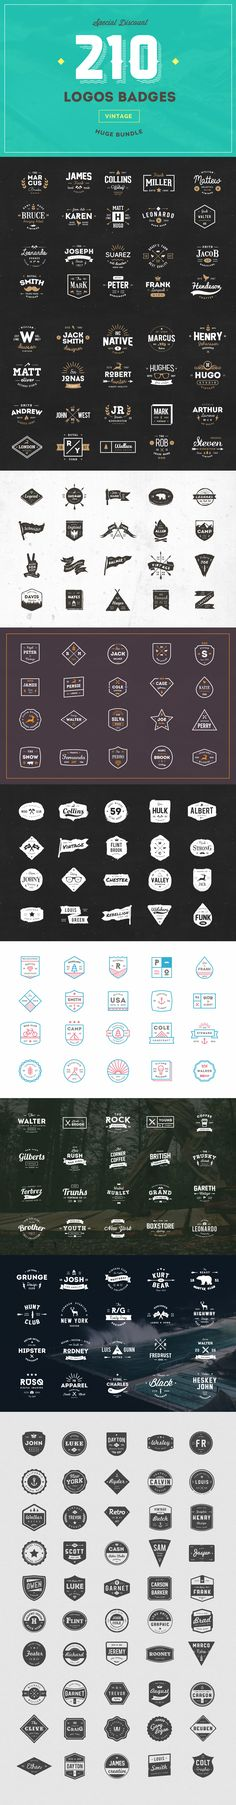 210 Logos Bundle by vuuuds on @creativemarket